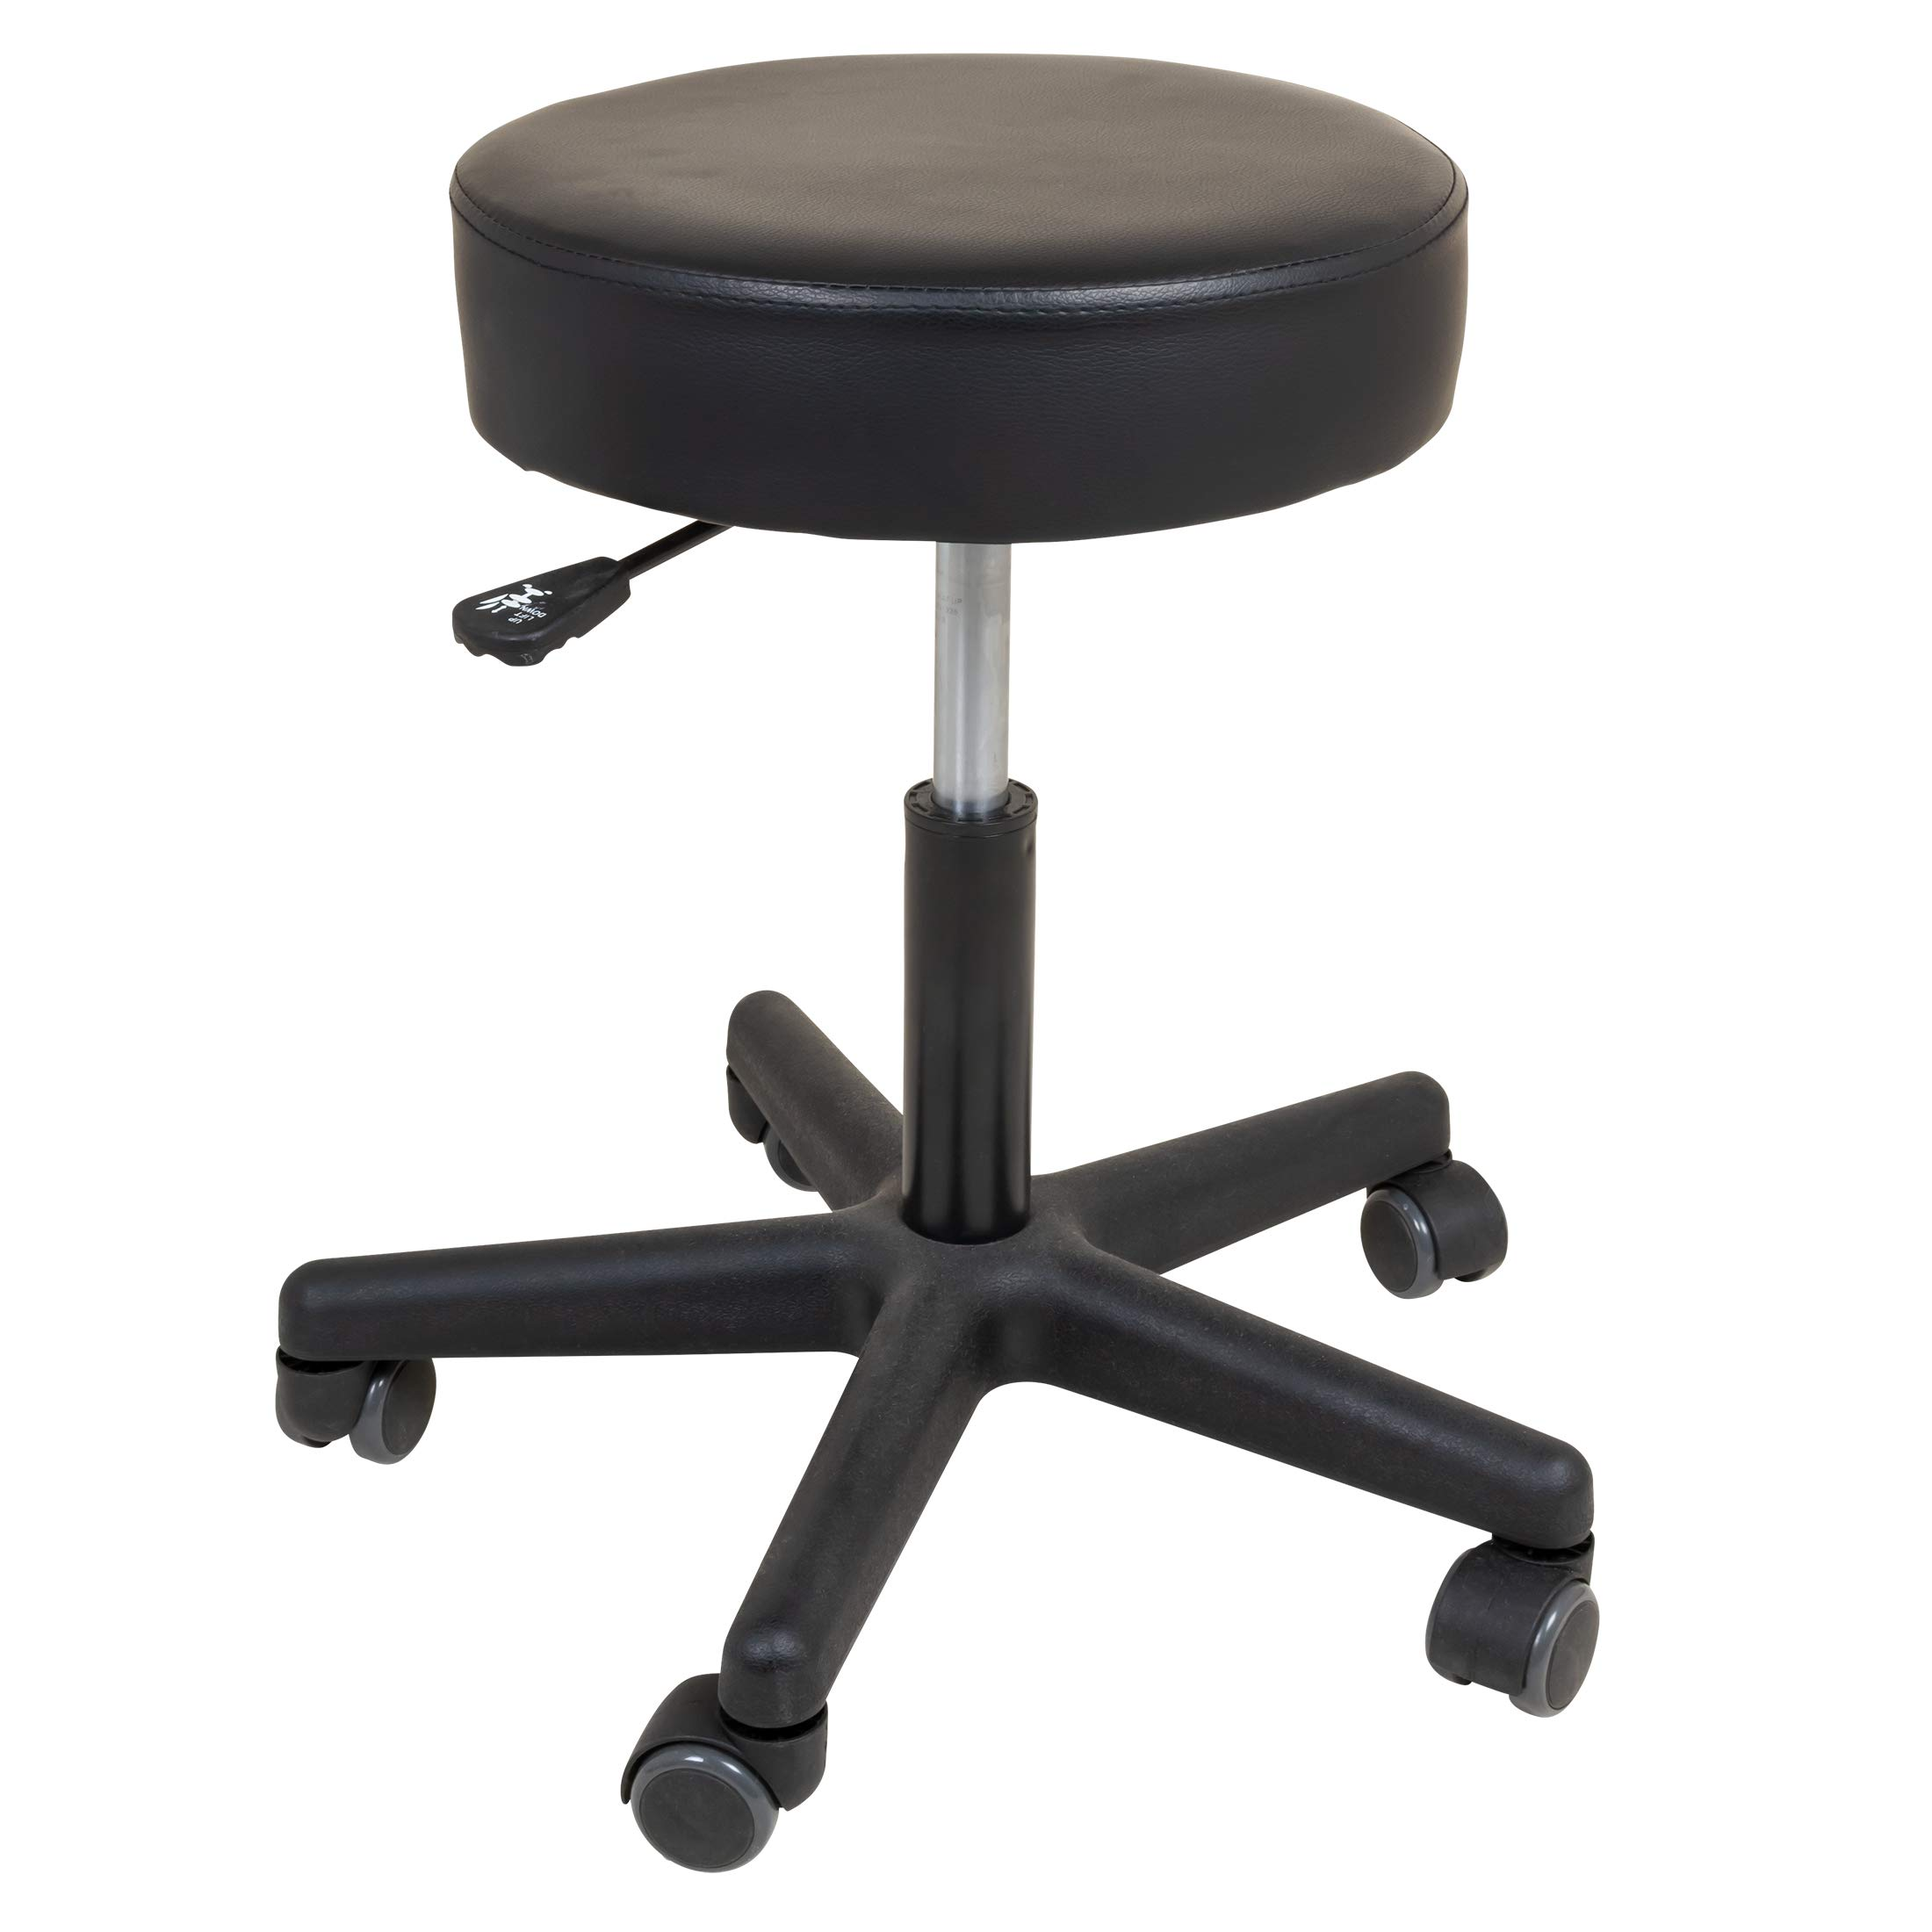 Roscoe Medical Rolling Stool - Stool With Wheels - Round Adjustable Work Stool, For Work, Office, Desk, Salon, Drafting, Spa by Roscoe Medical